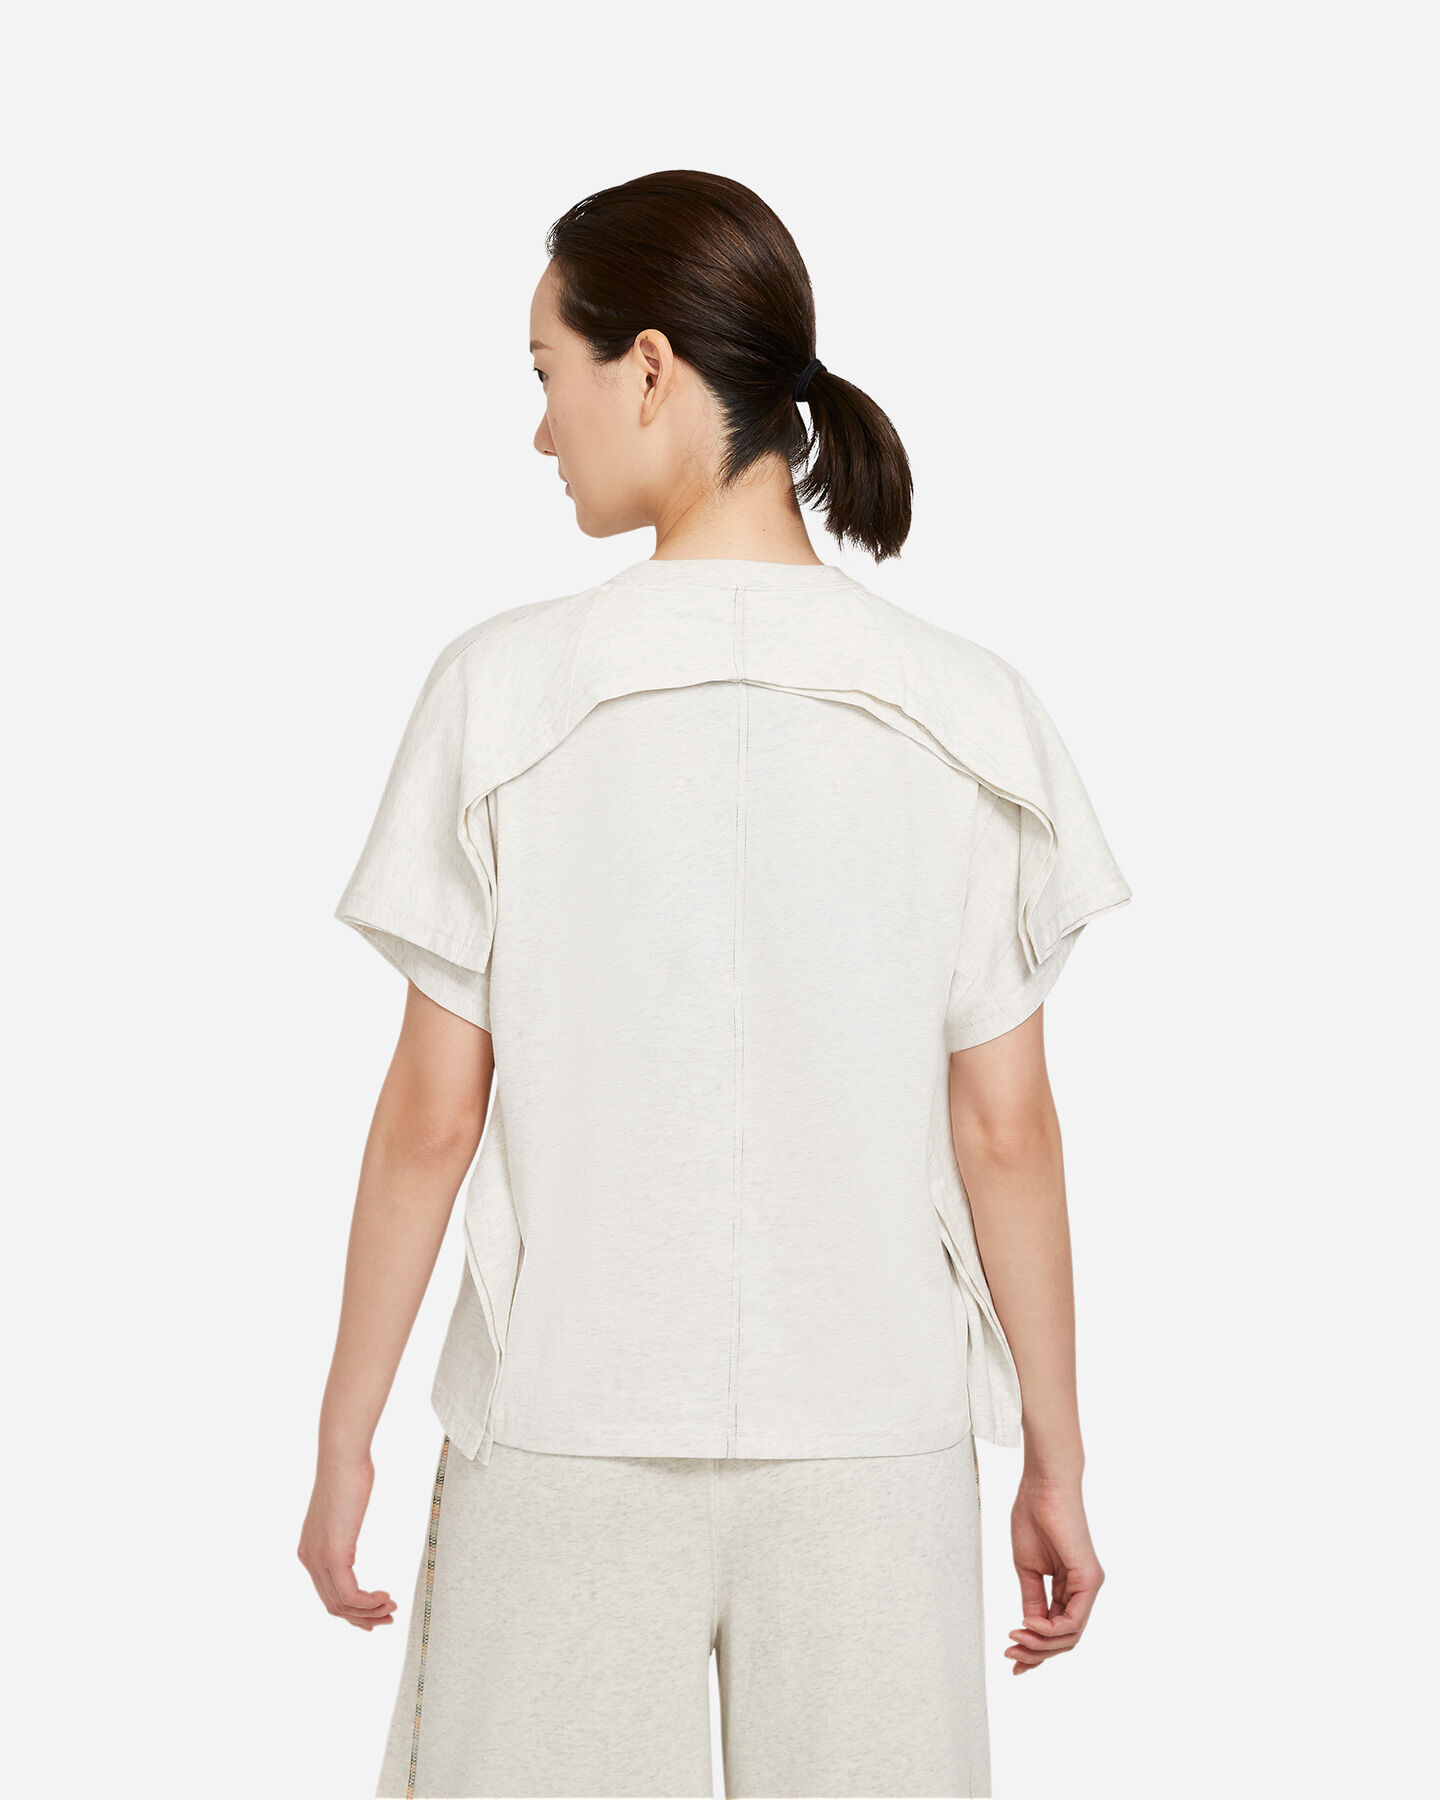 T-Shirt NIKE EARTH DAY W S5269770 scatto 1